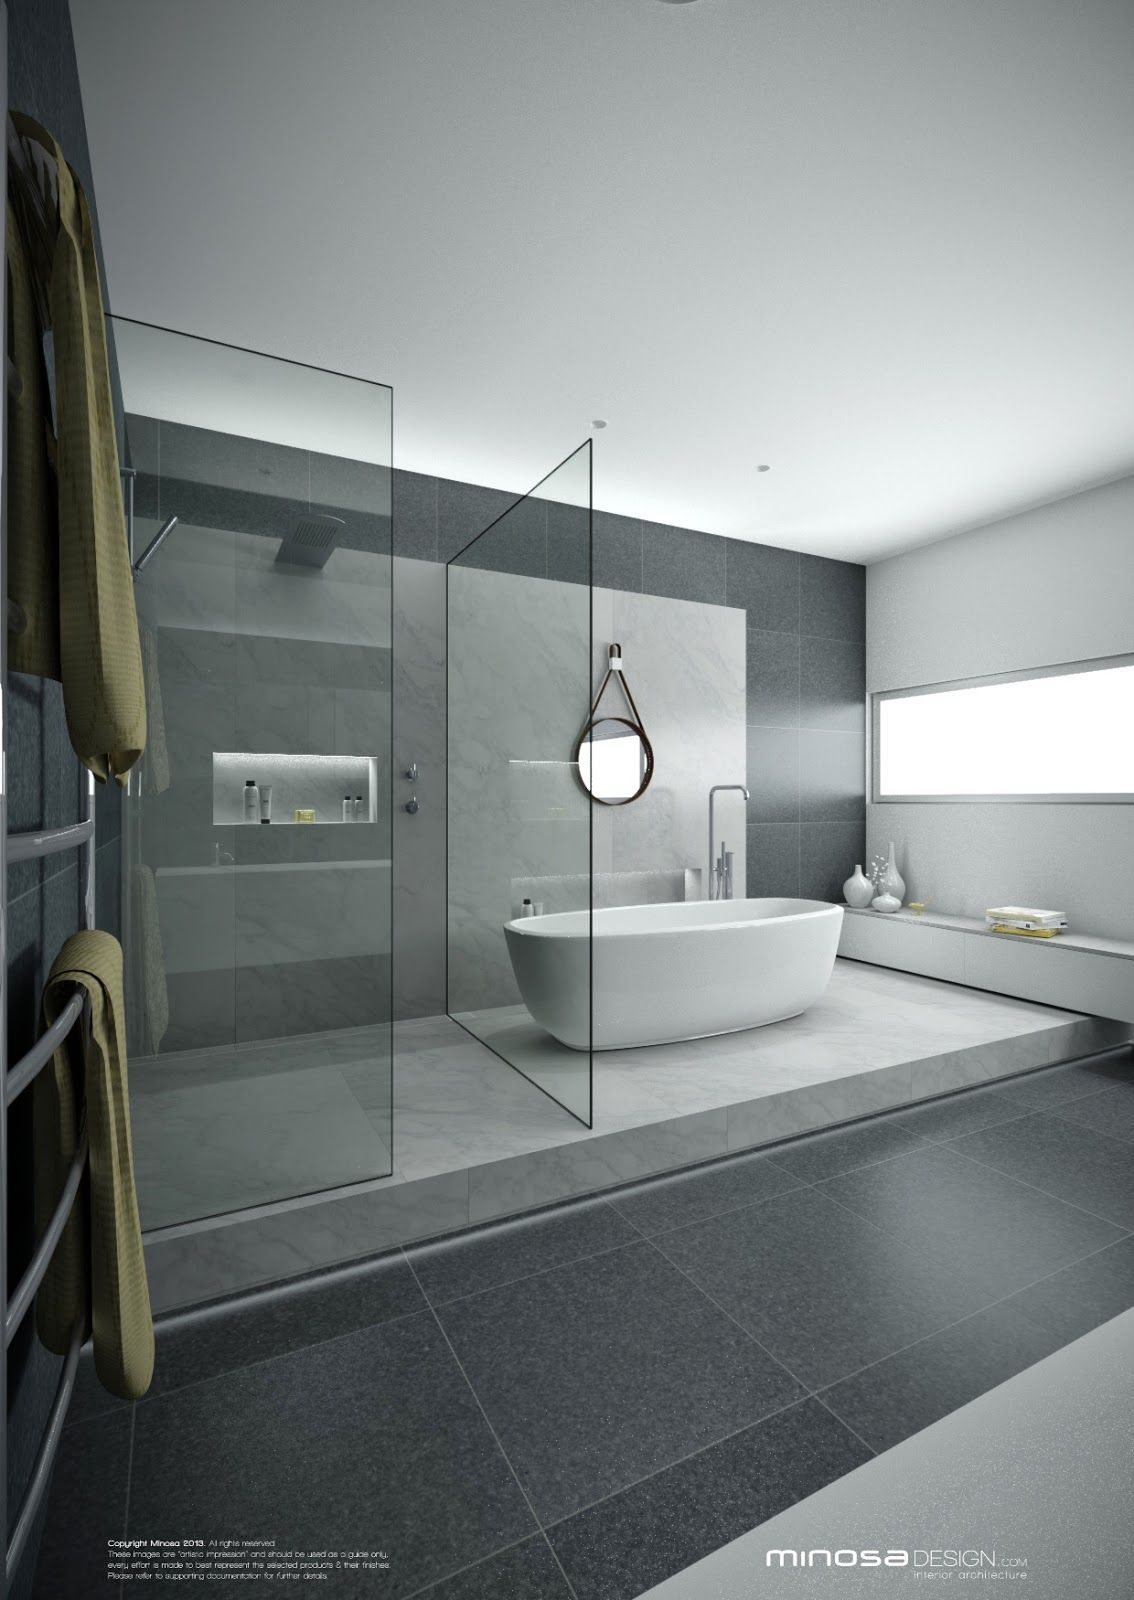 Modern Kitchen And Bathroom Design Solutionsaward Winning Design - Modern kitchen and bathroom designs